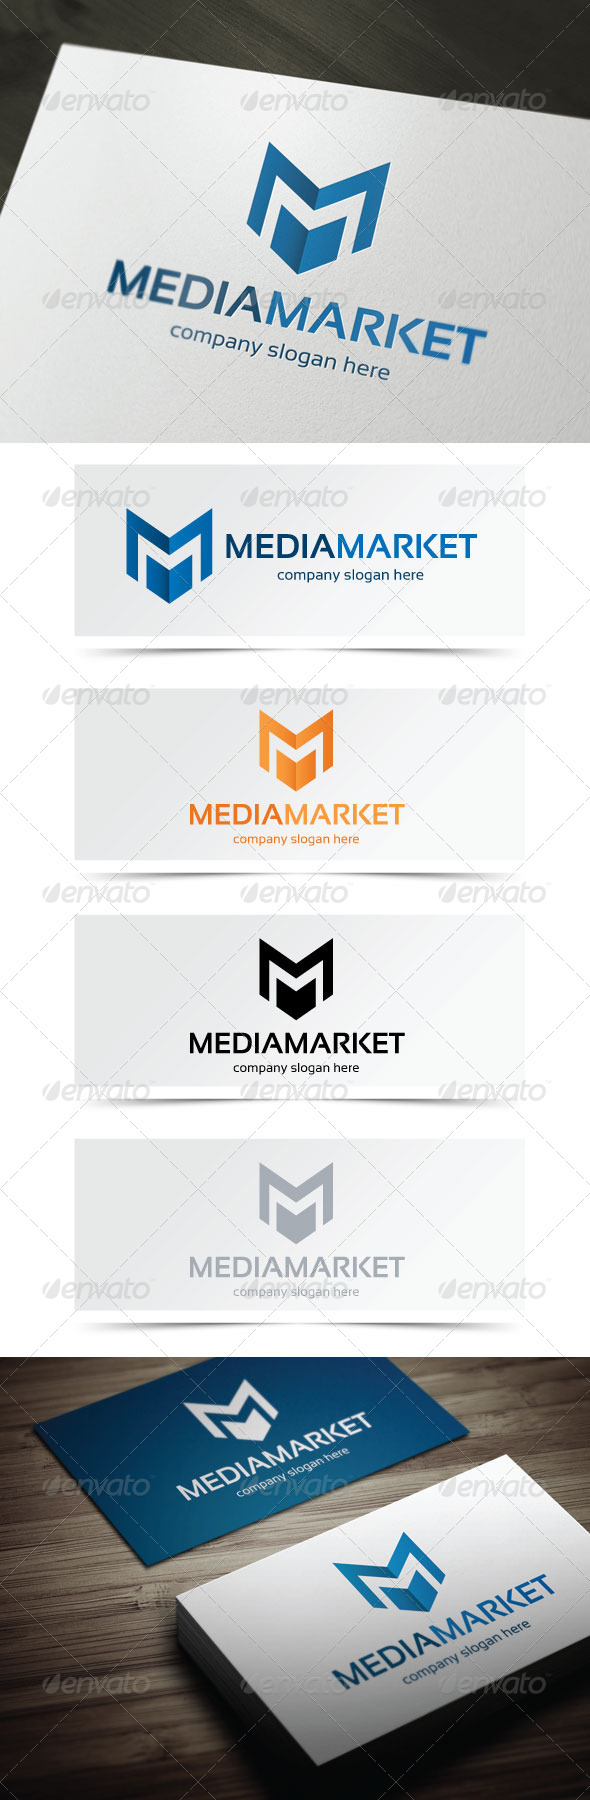 GraphicRiver Media Market 5158918